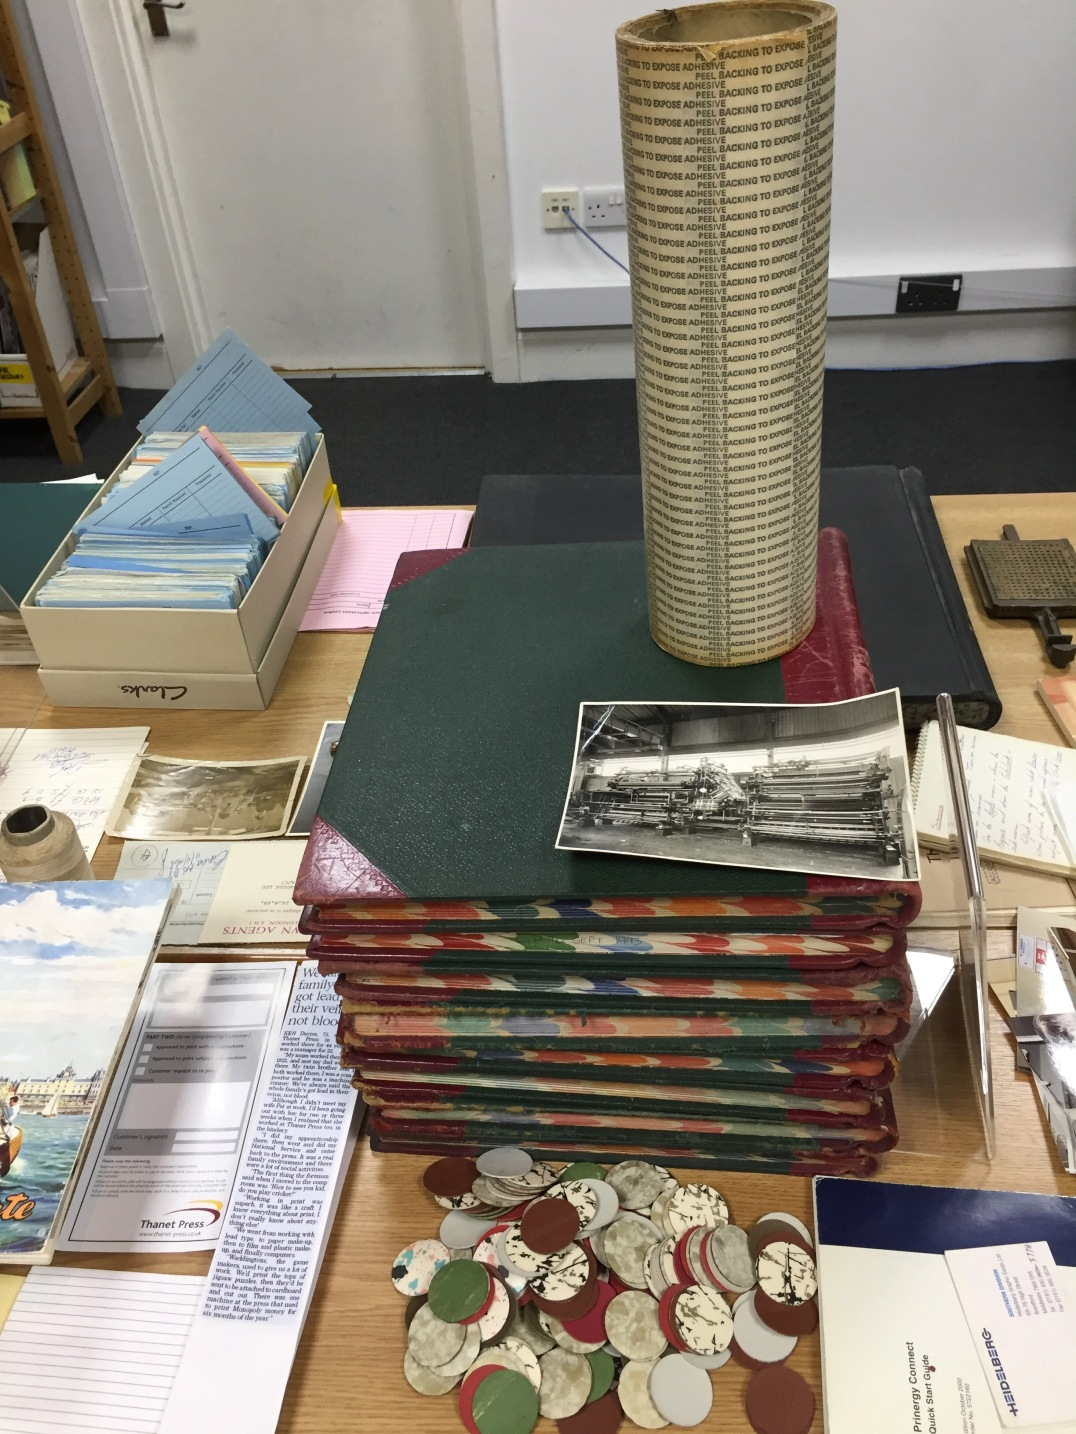 Objects and ephemera from Thanet Press